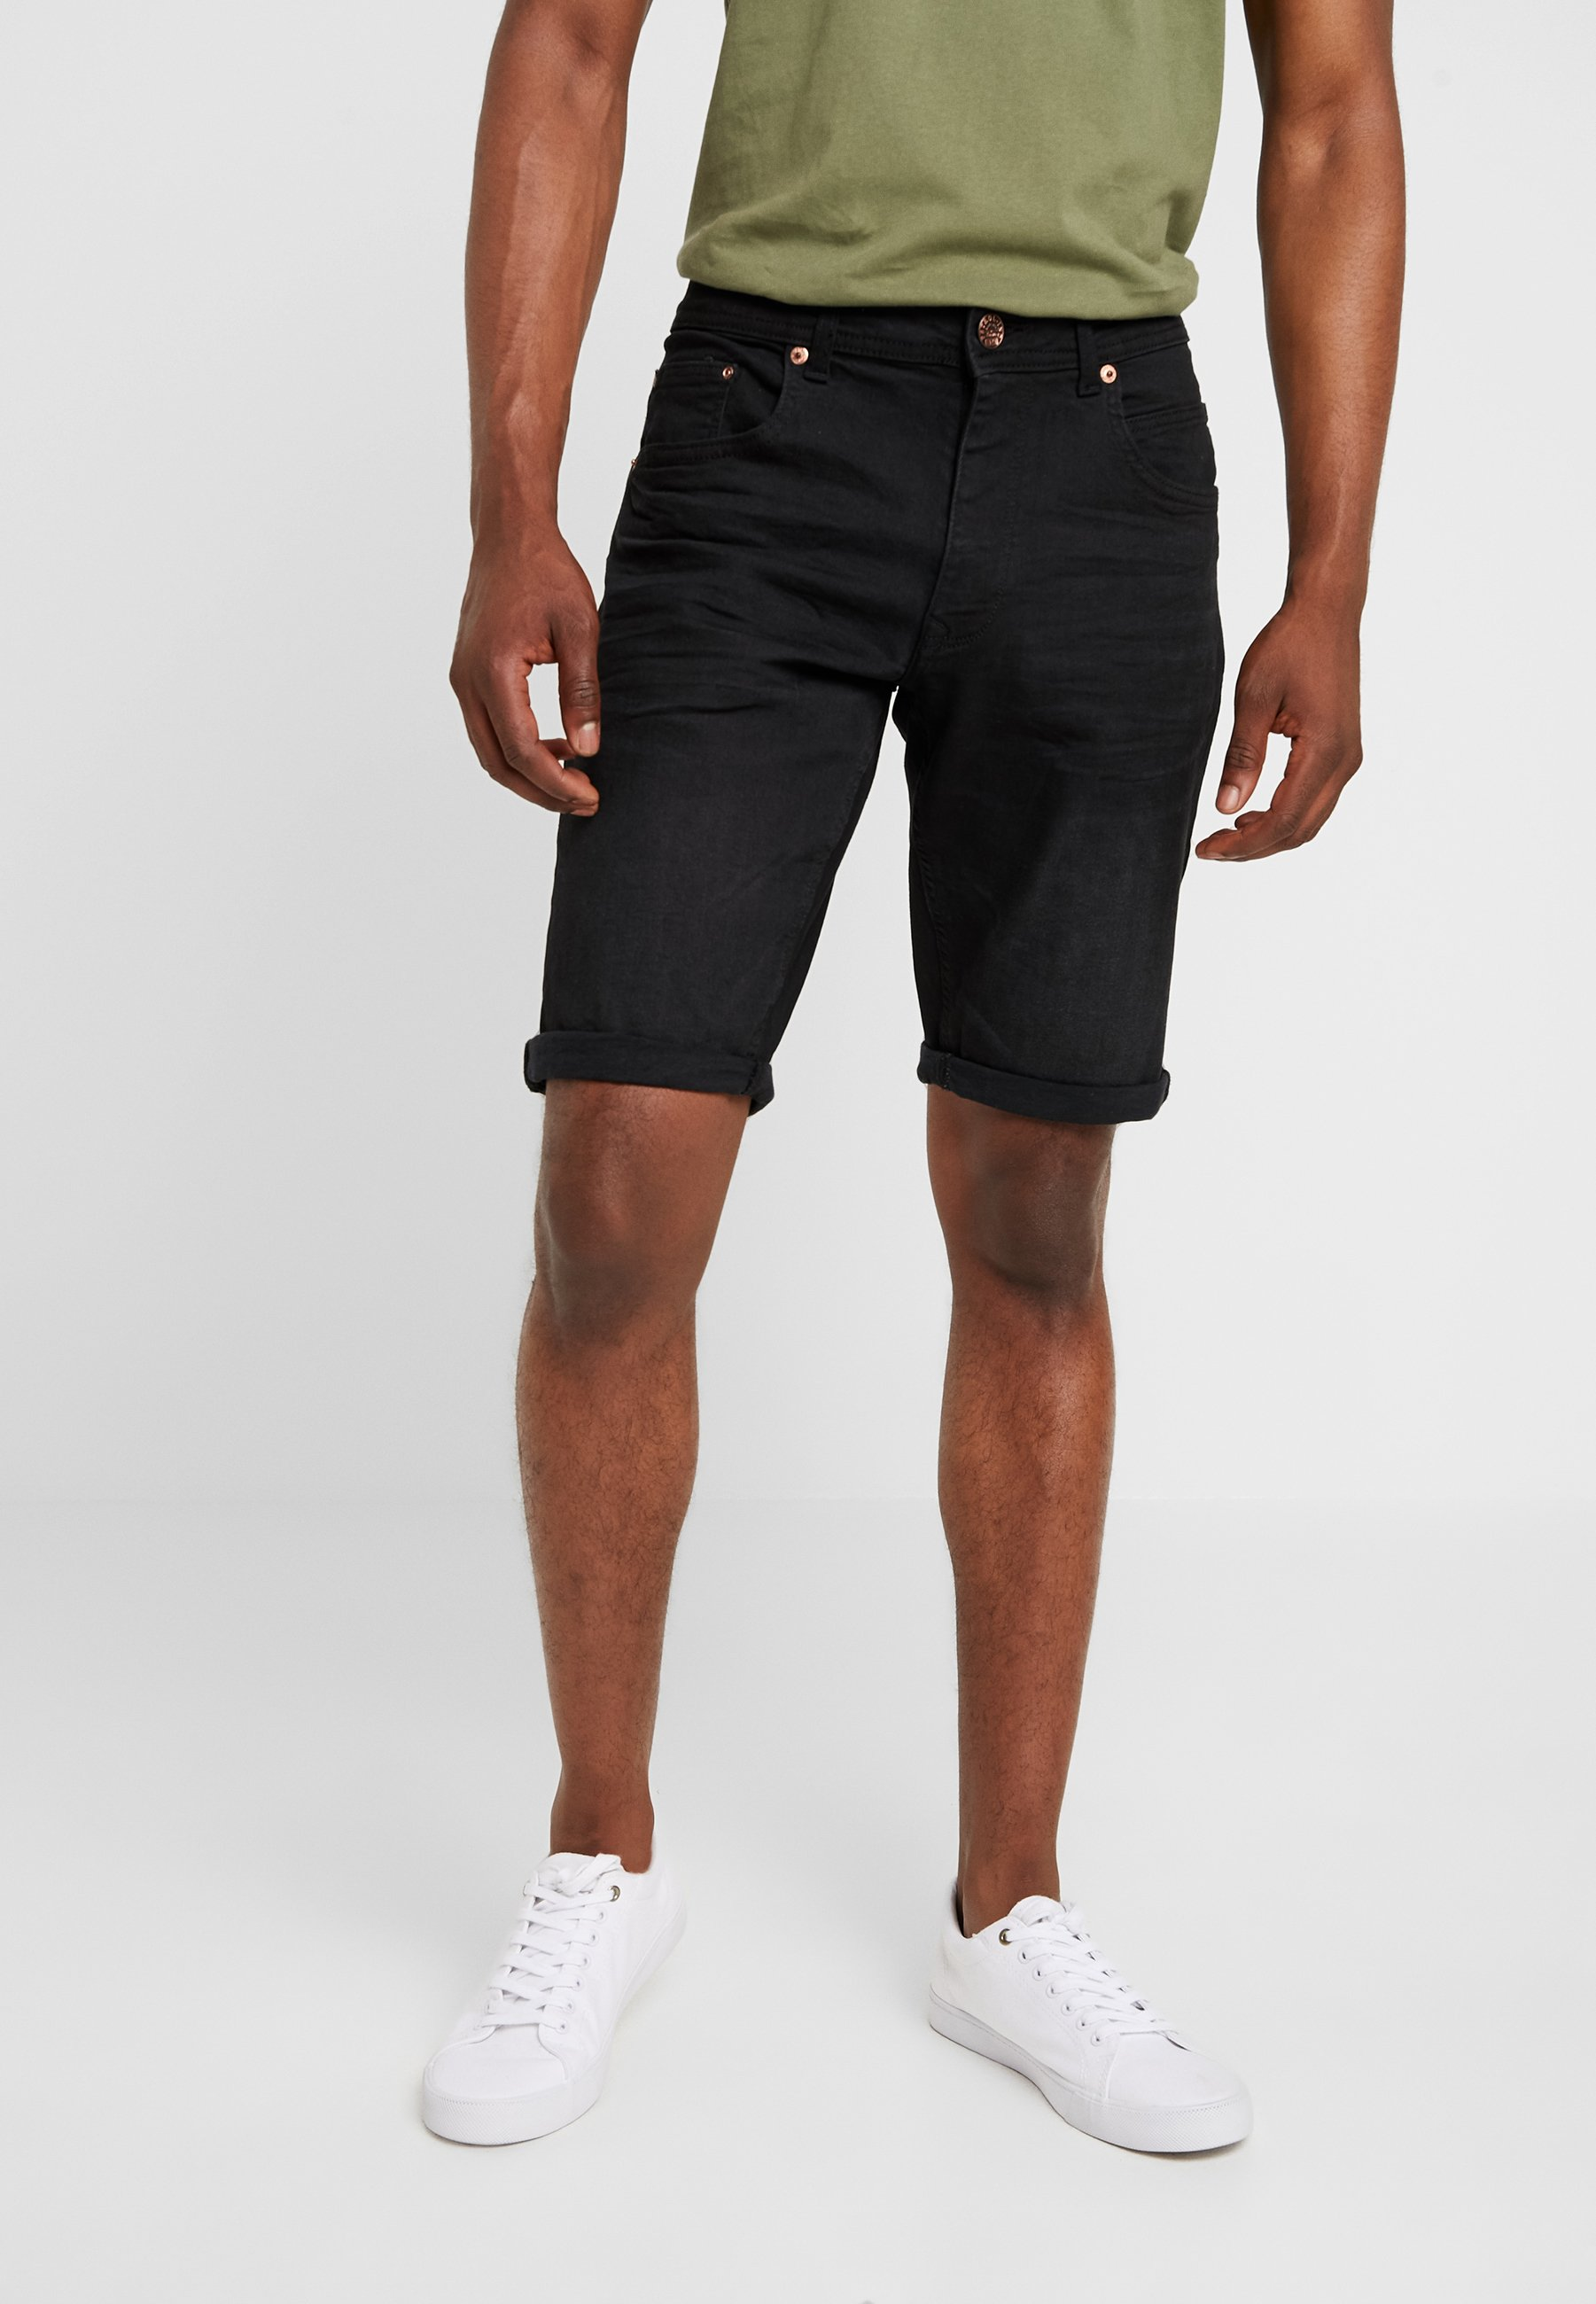 Shorts Industries Black Di Petrol Jeans qpUMSzV